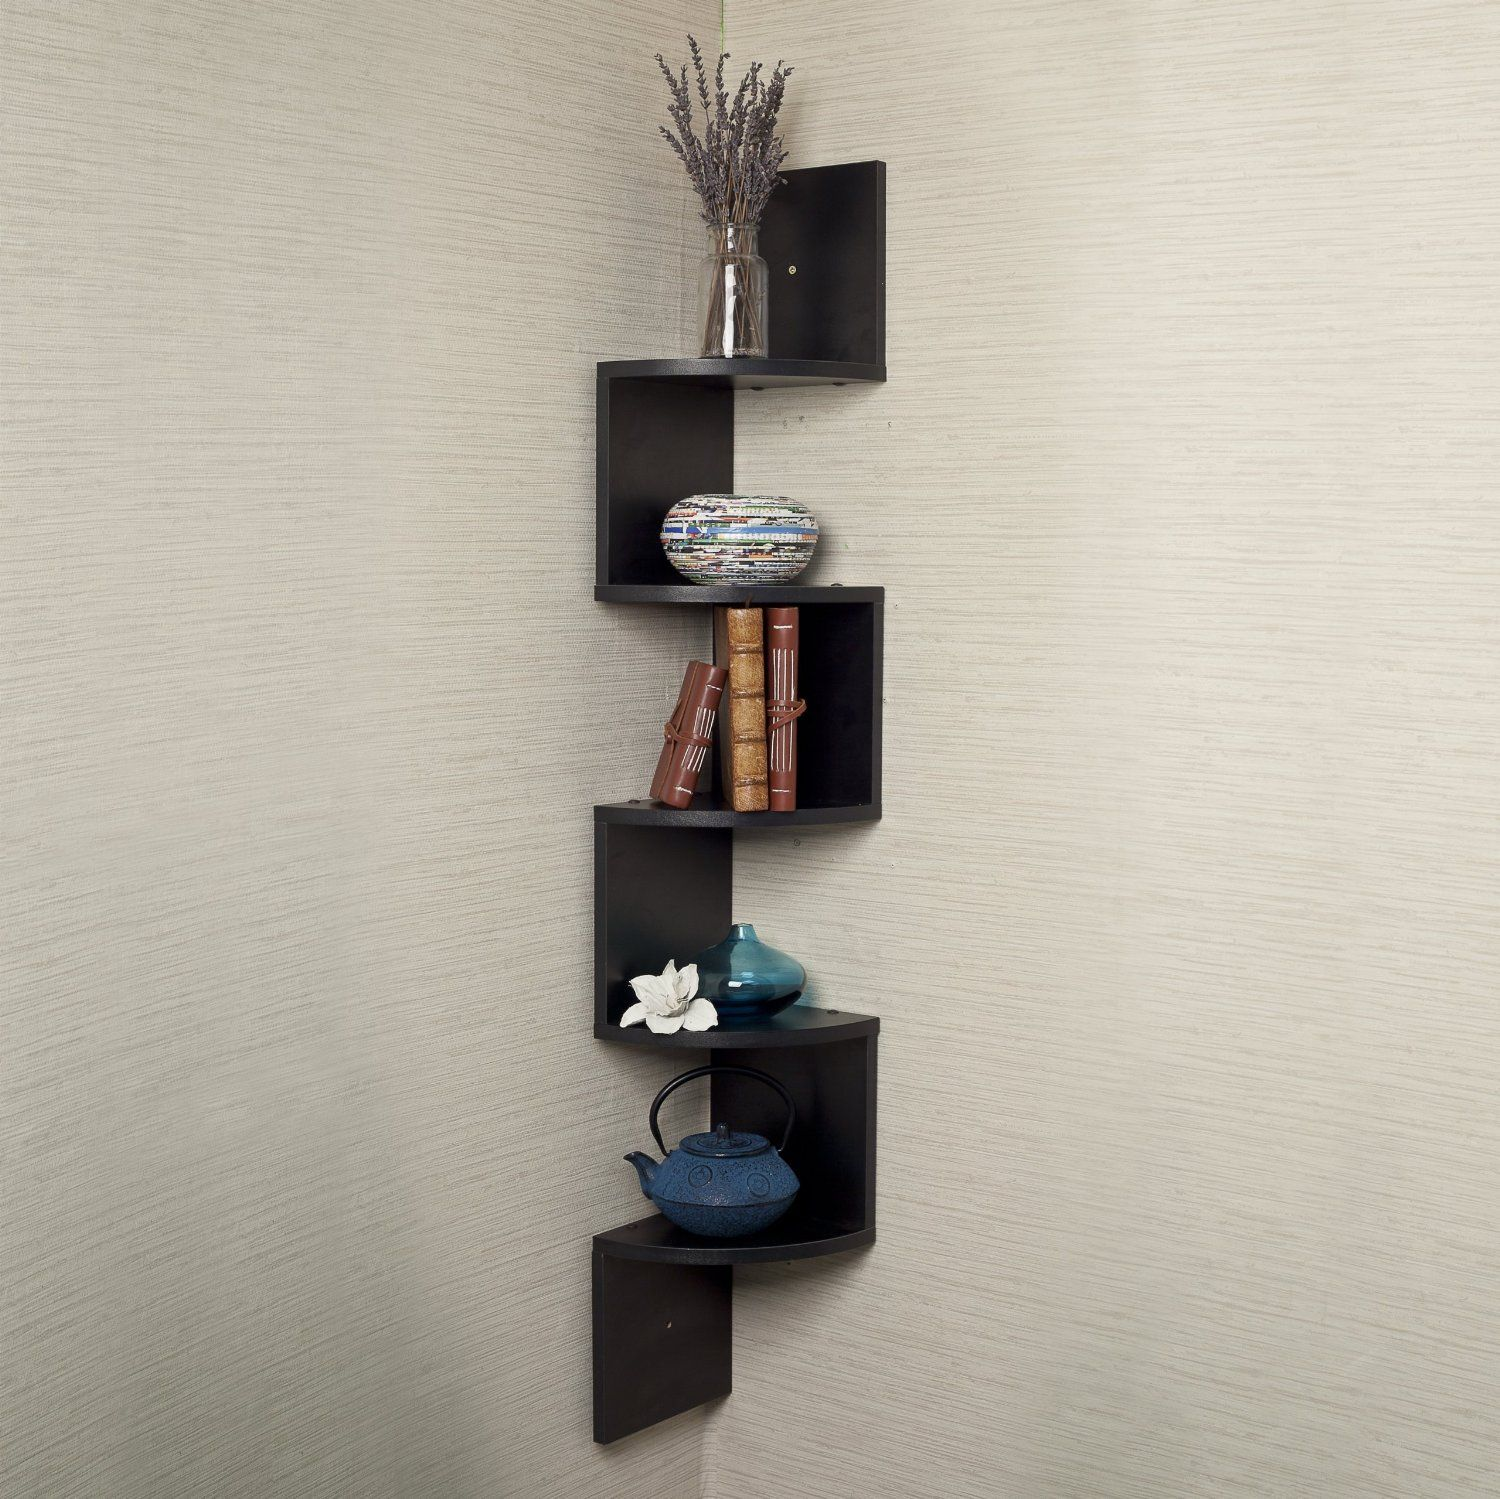 Corner Showcase Designs For Living Room Classy Danya Blarge Corner Wall Mount Shelfblack Laminate  Living Inspiration